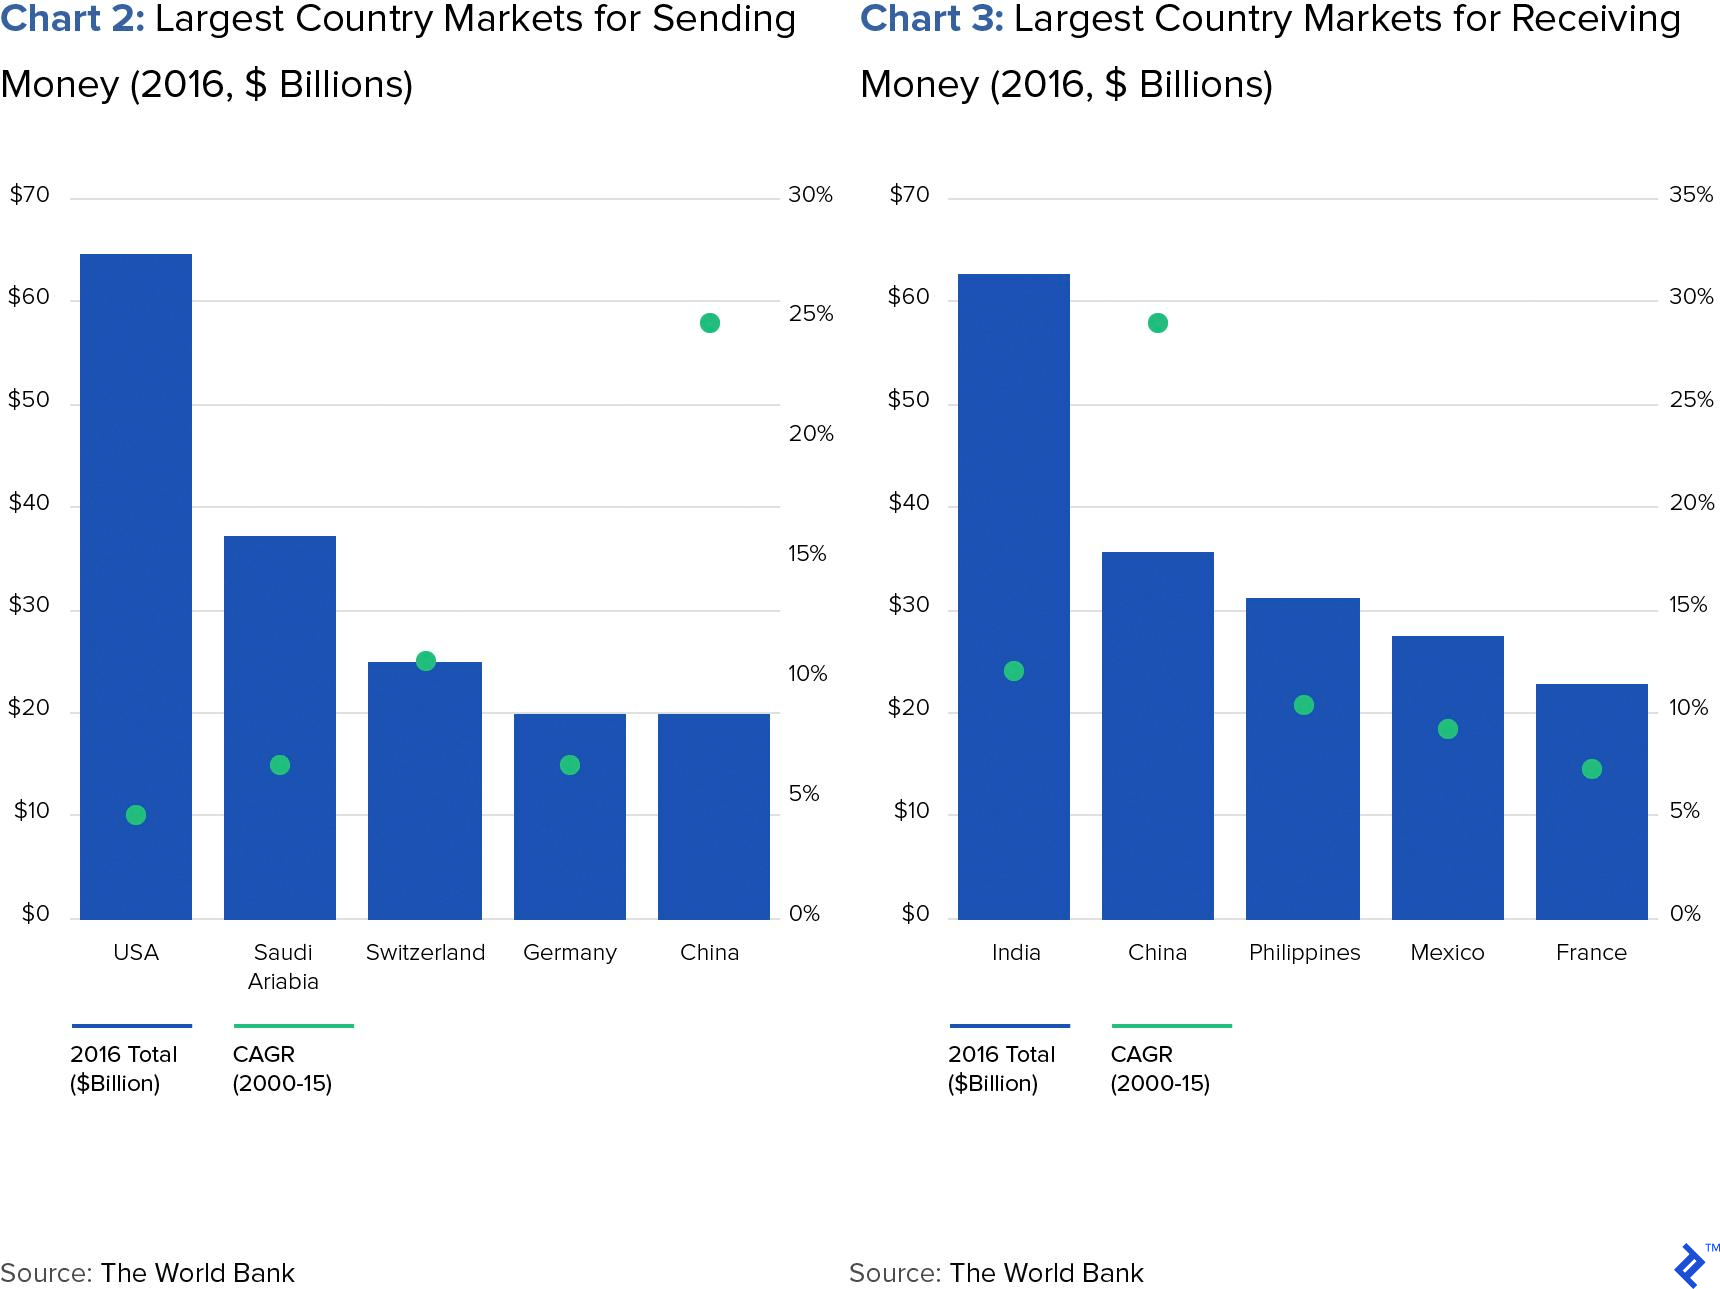 Chart 2: Largest Country Markets for Sending Money (2016, $ Billions) and Chart 3: Largest Country Markets for Receiving Money (2016, $ Billions)